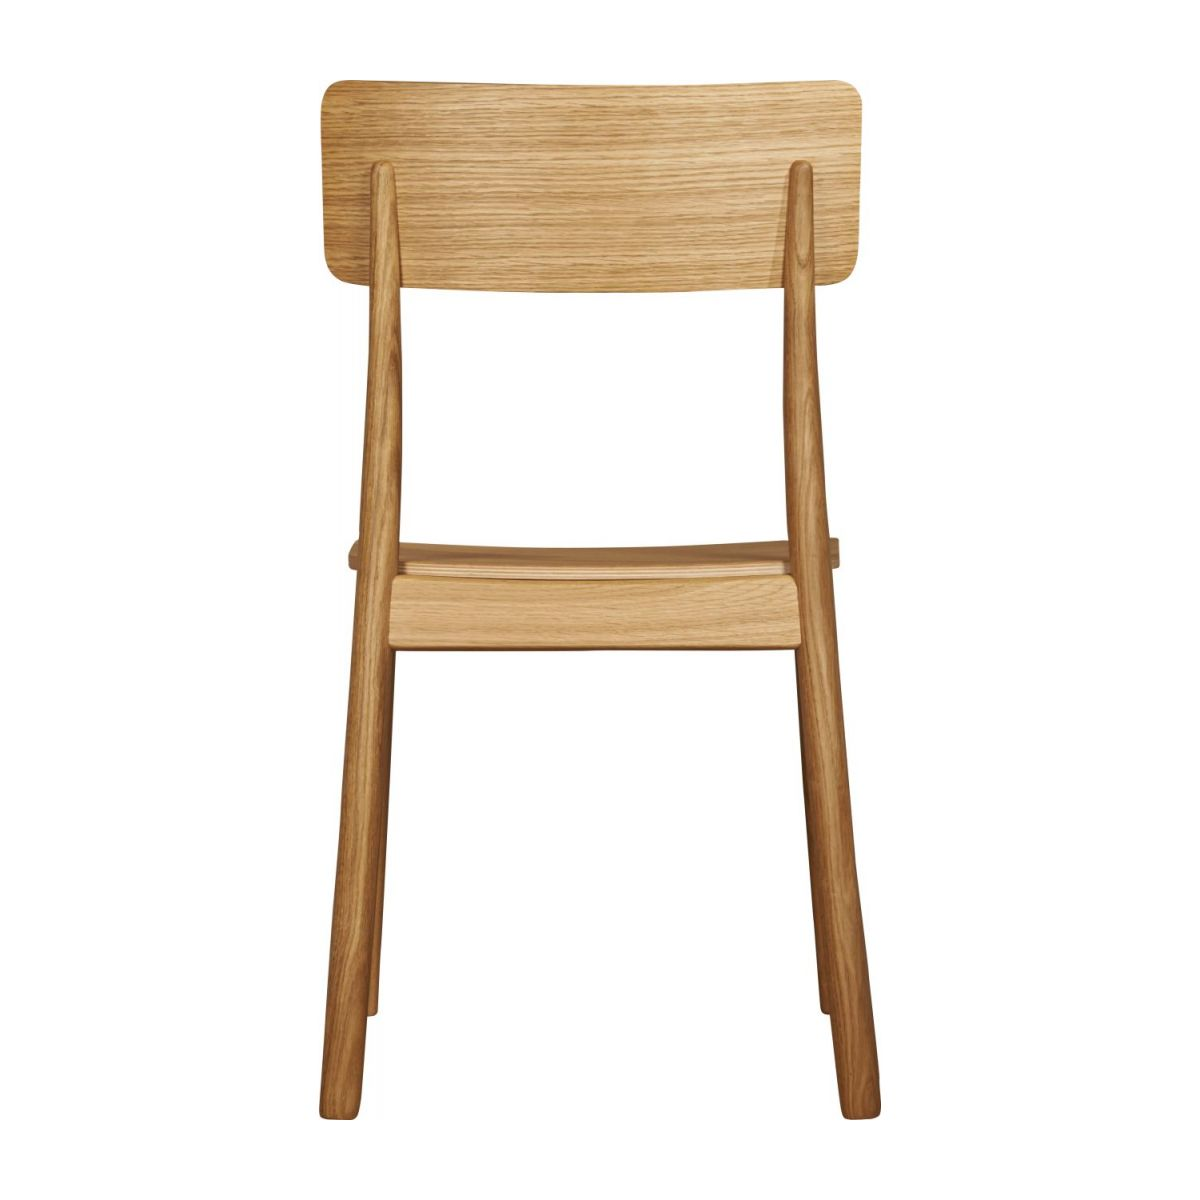 Oak chair n°5